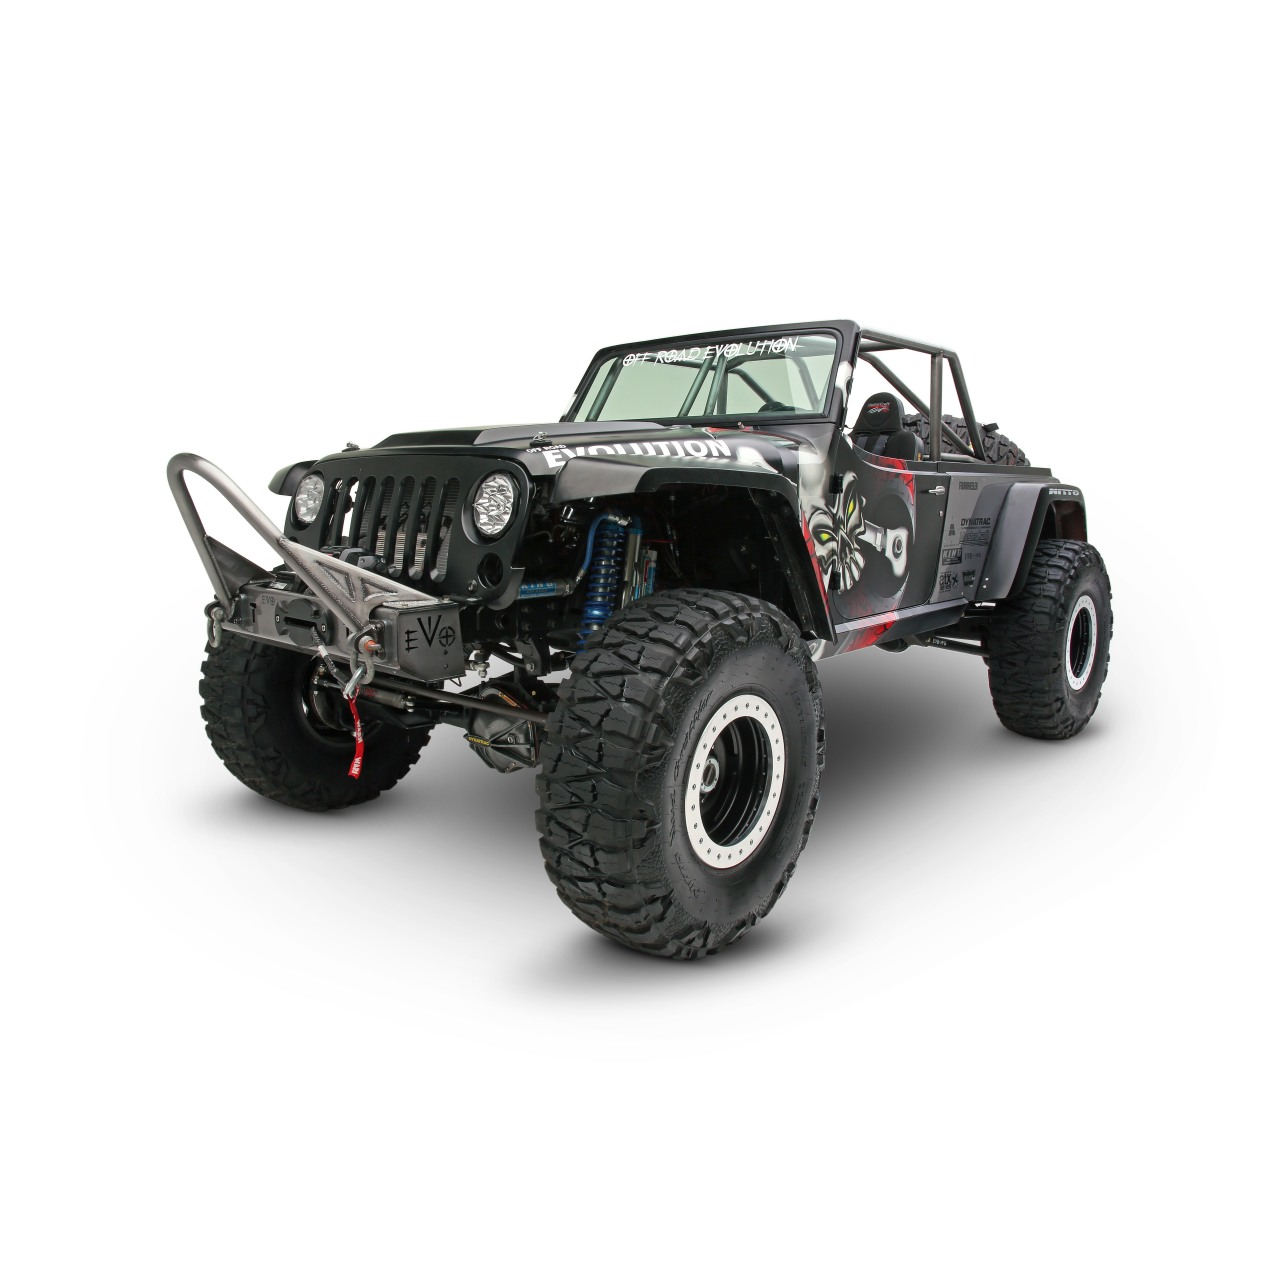 EBay Motors BUILT Custom Rides Charity Auction Ends This